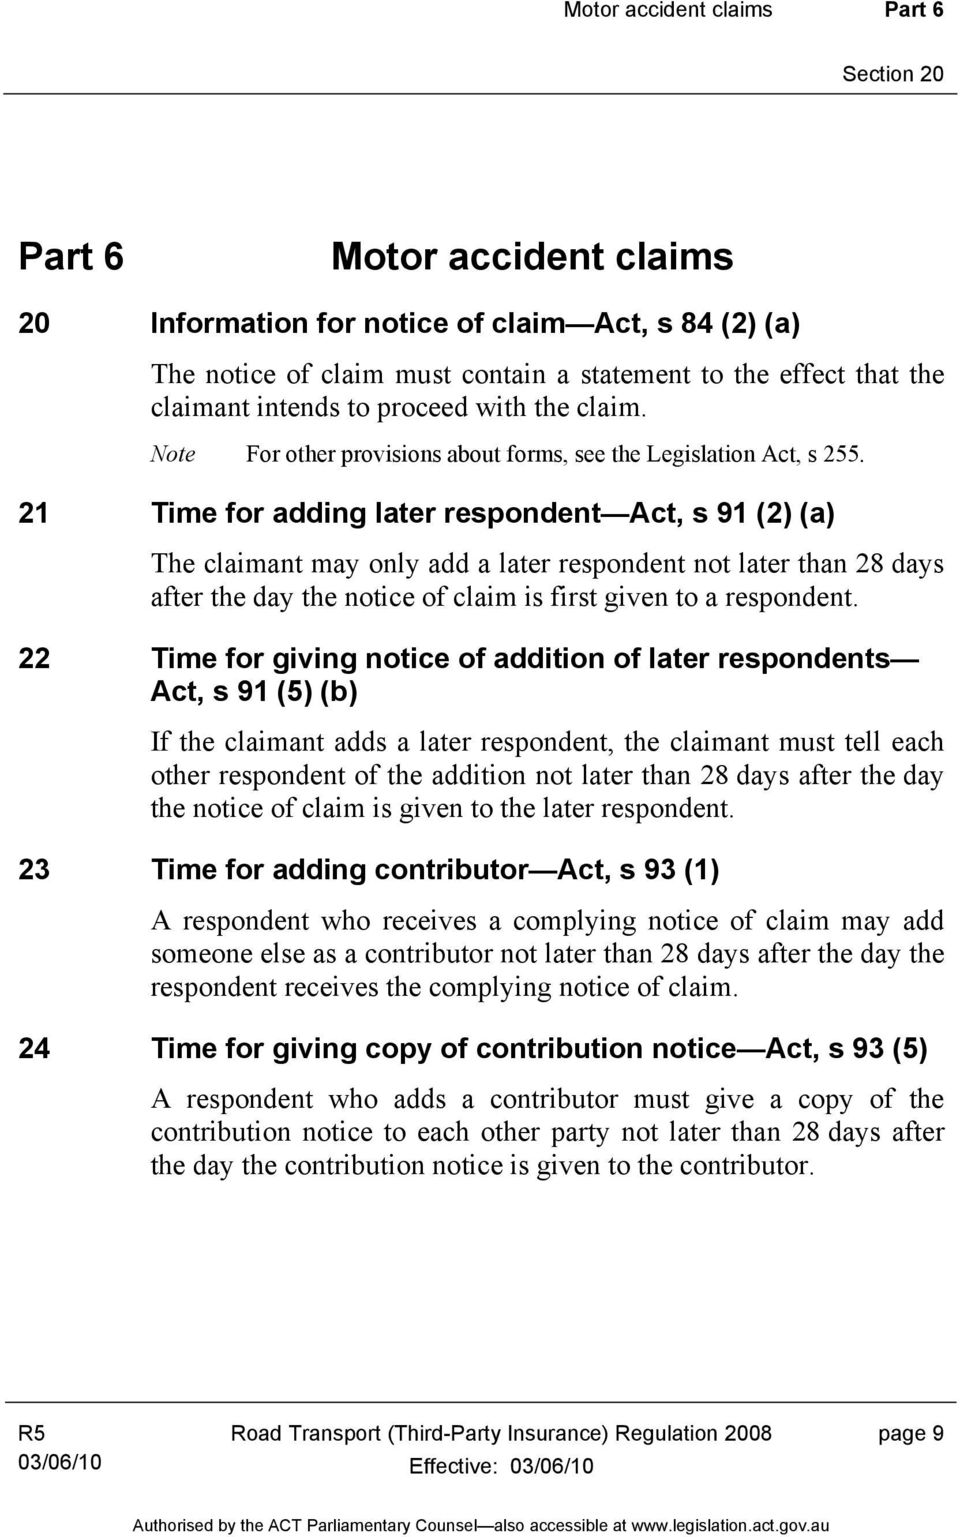 21 Time for adding later respondent Act, s 91 (2) (a) The claimant may only add a later respondent not later than 28 days after the day the notice of claim is first given to a respondent.